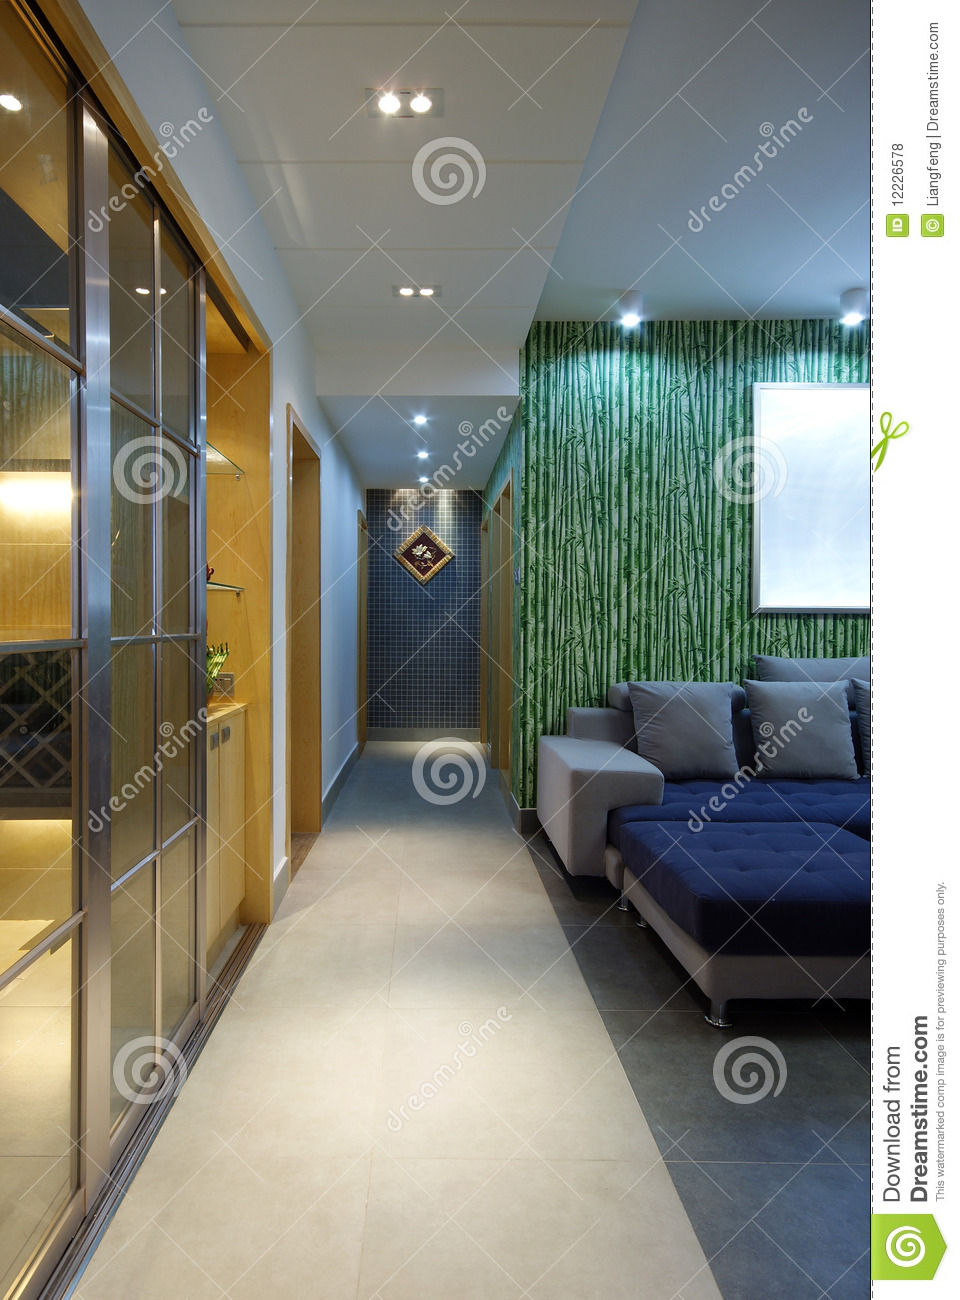 New residential royalty free stock photos image 12226578 for Residential decorating